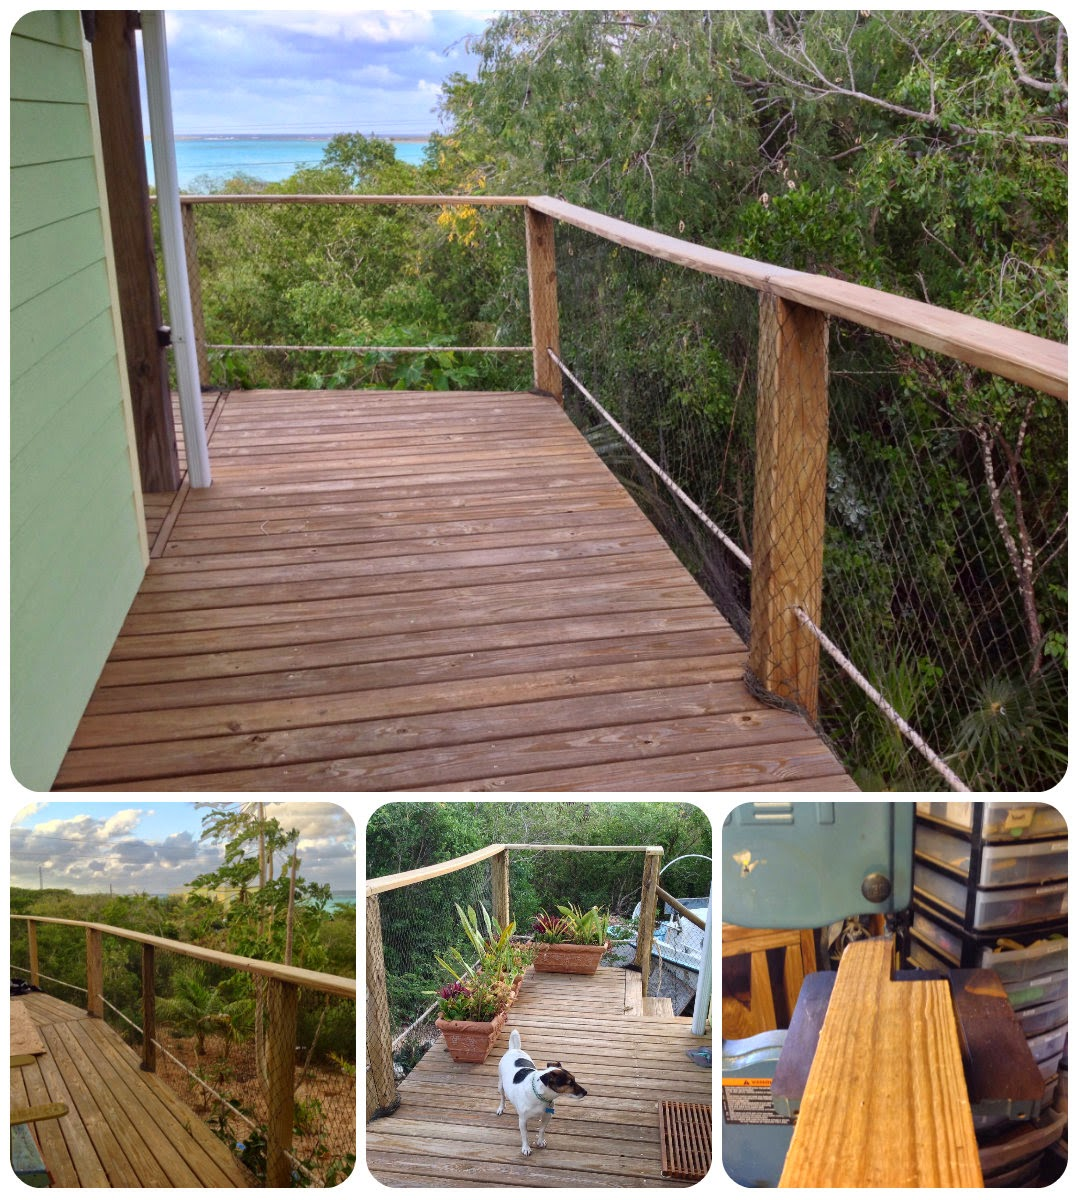 How to install a deck railing - Diy Deck Railing